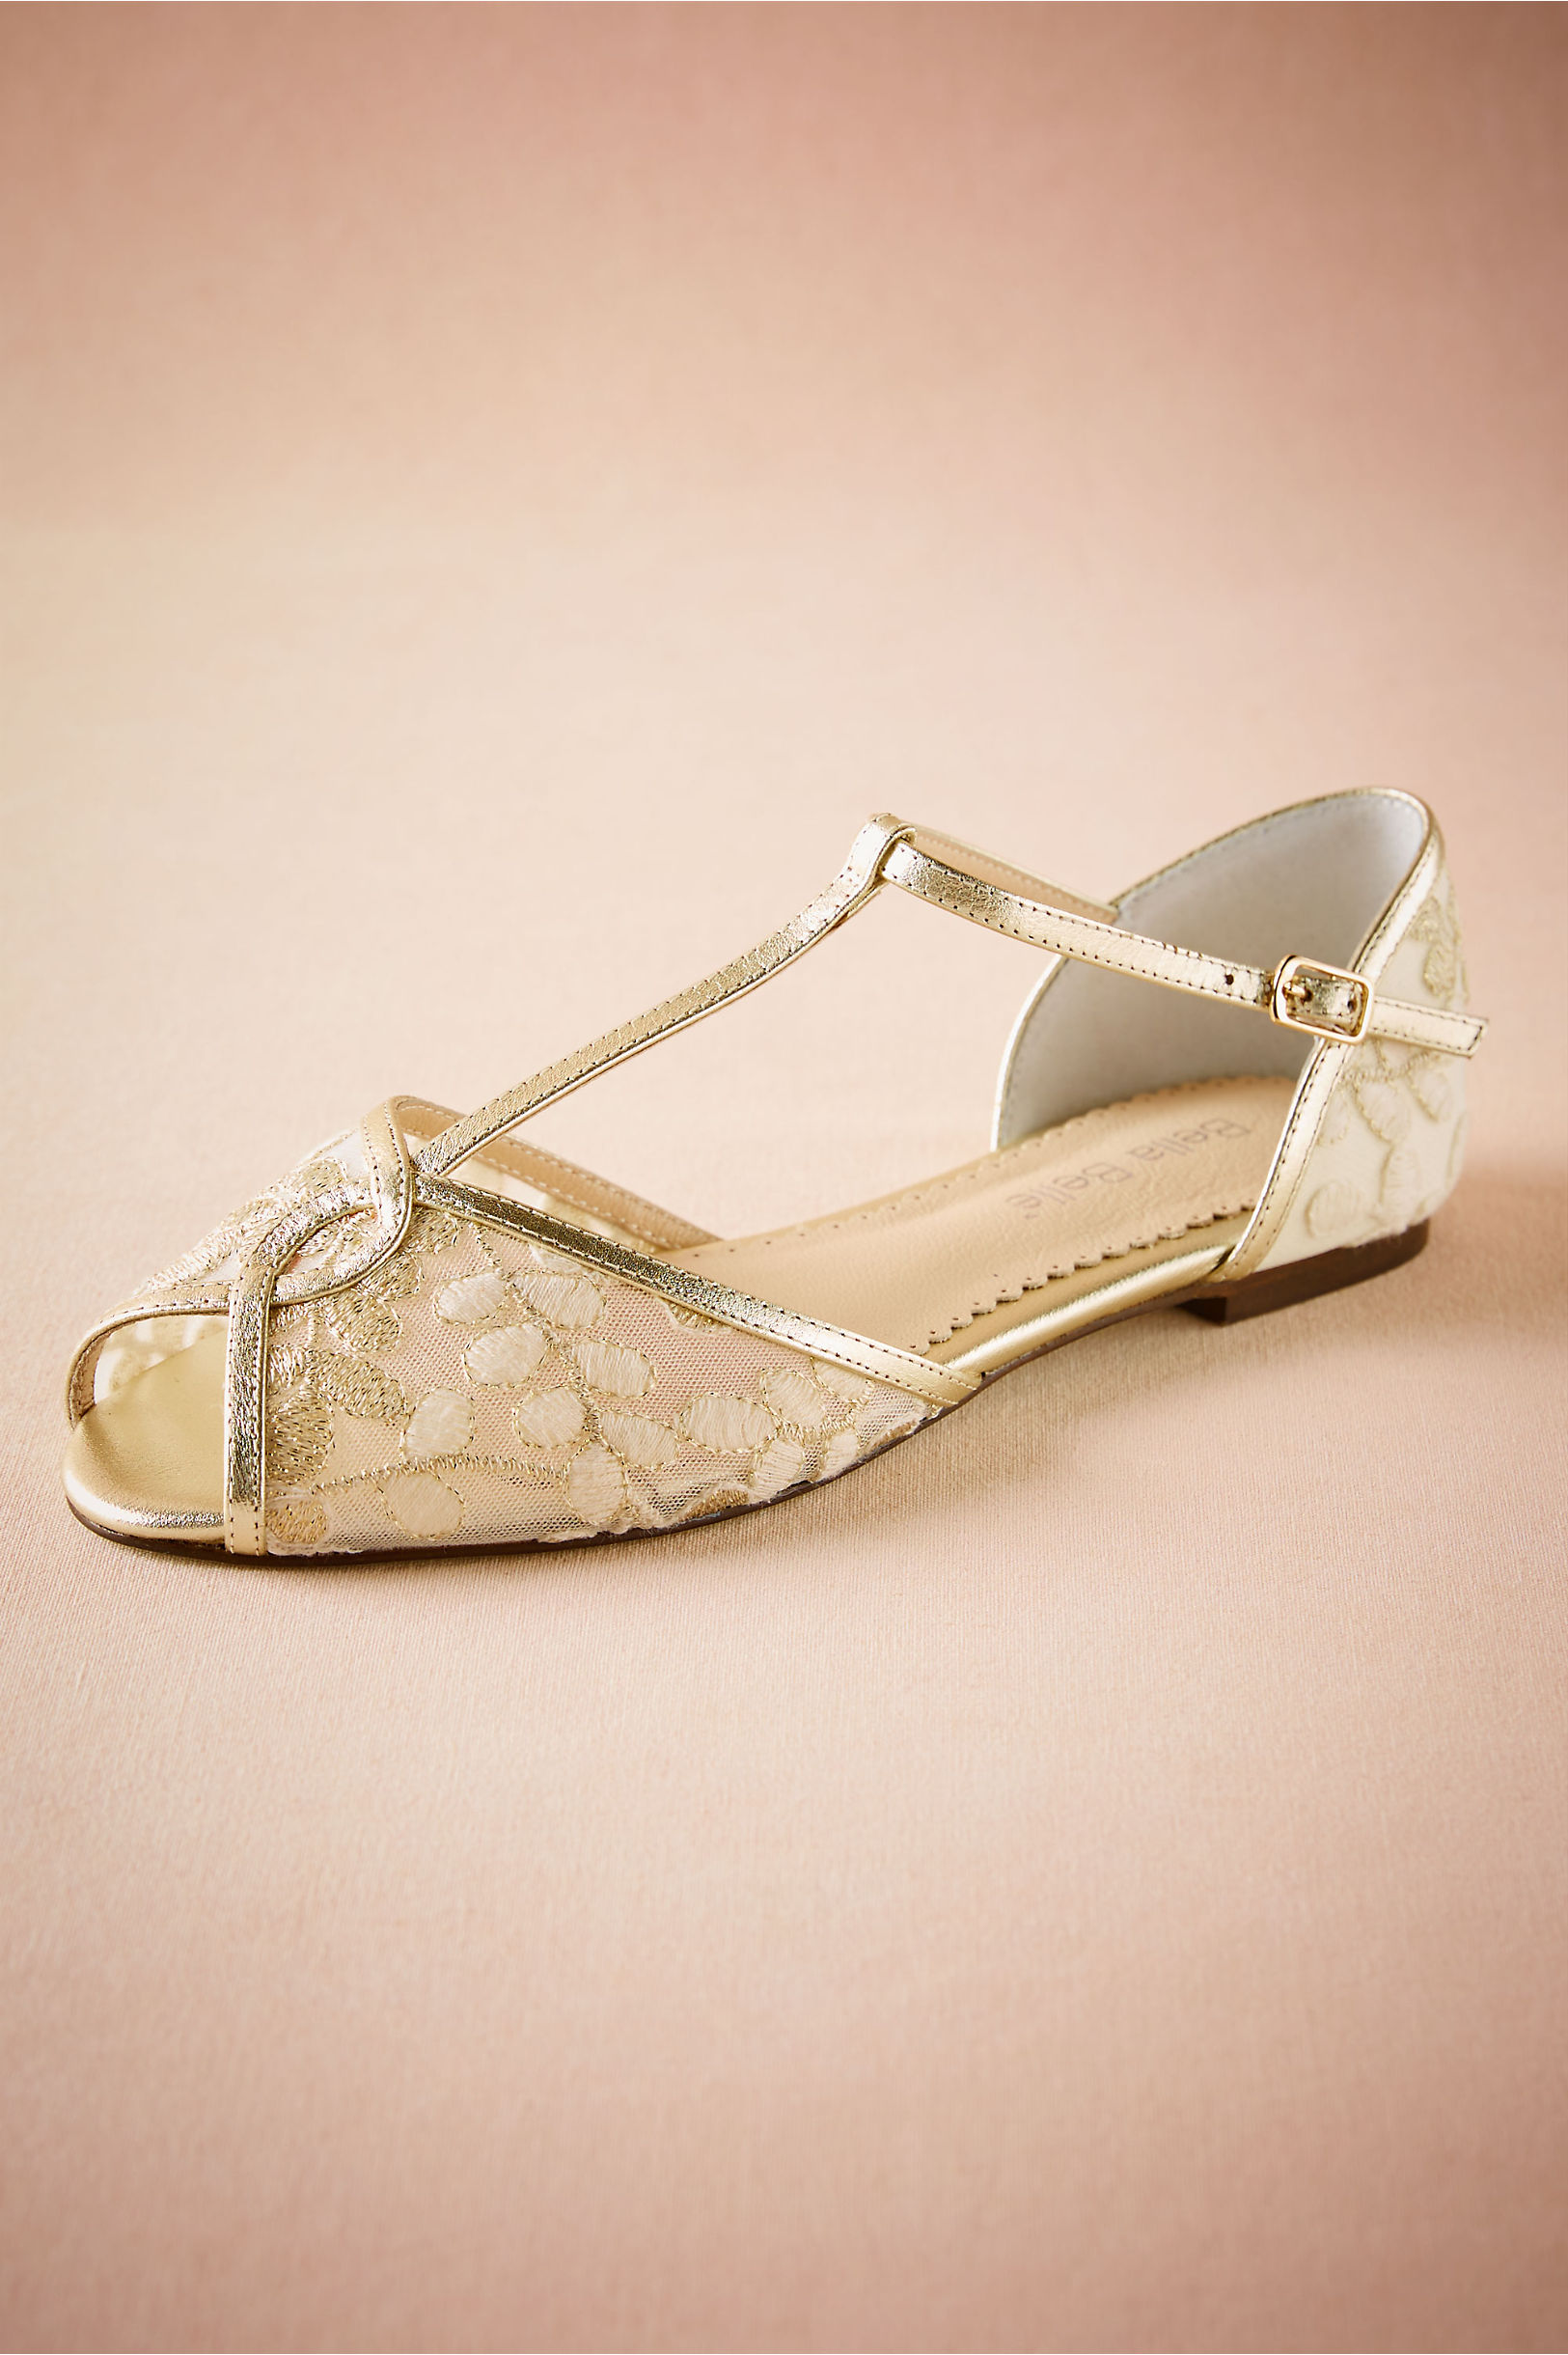 Retro Vintage Flats and Low Heel Shoes Maisie Embroidered T-Strap Flats $190.00 AT vintagedancer.com